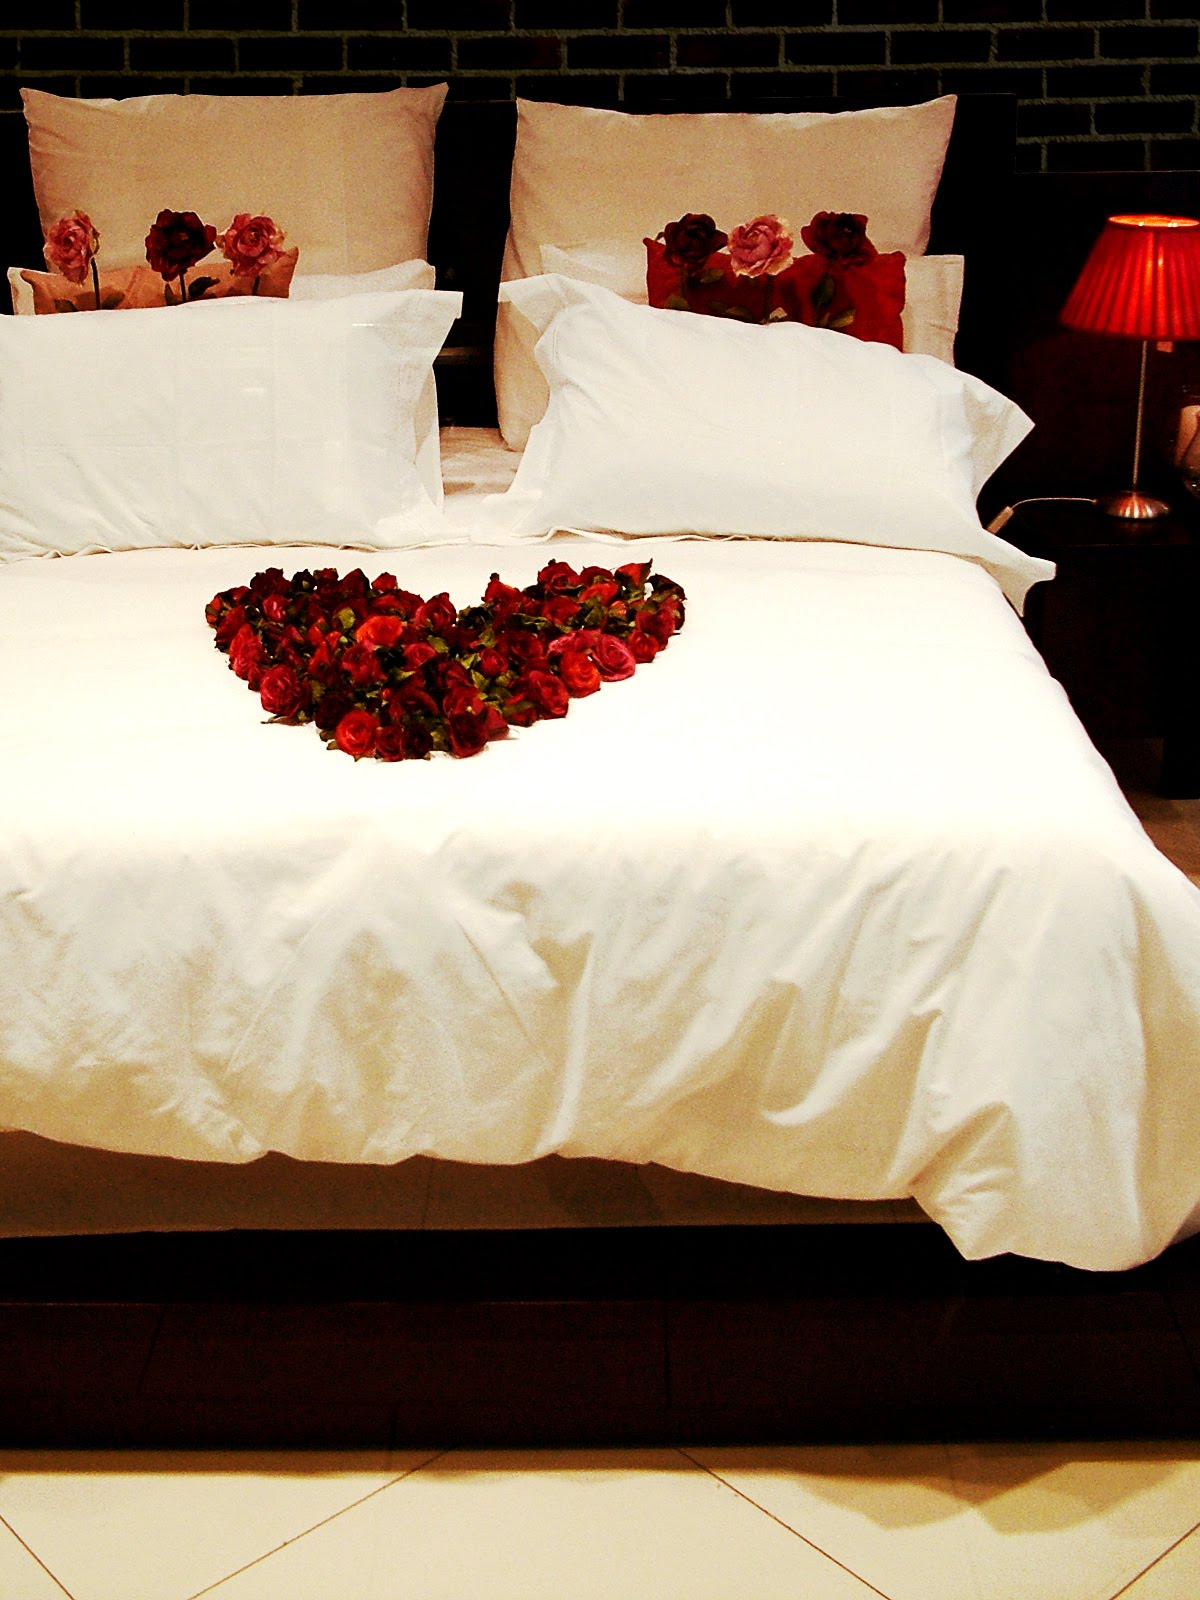 Sensual valentines day bedroom ideas interior decorating for Bedroom ideas for valentines day